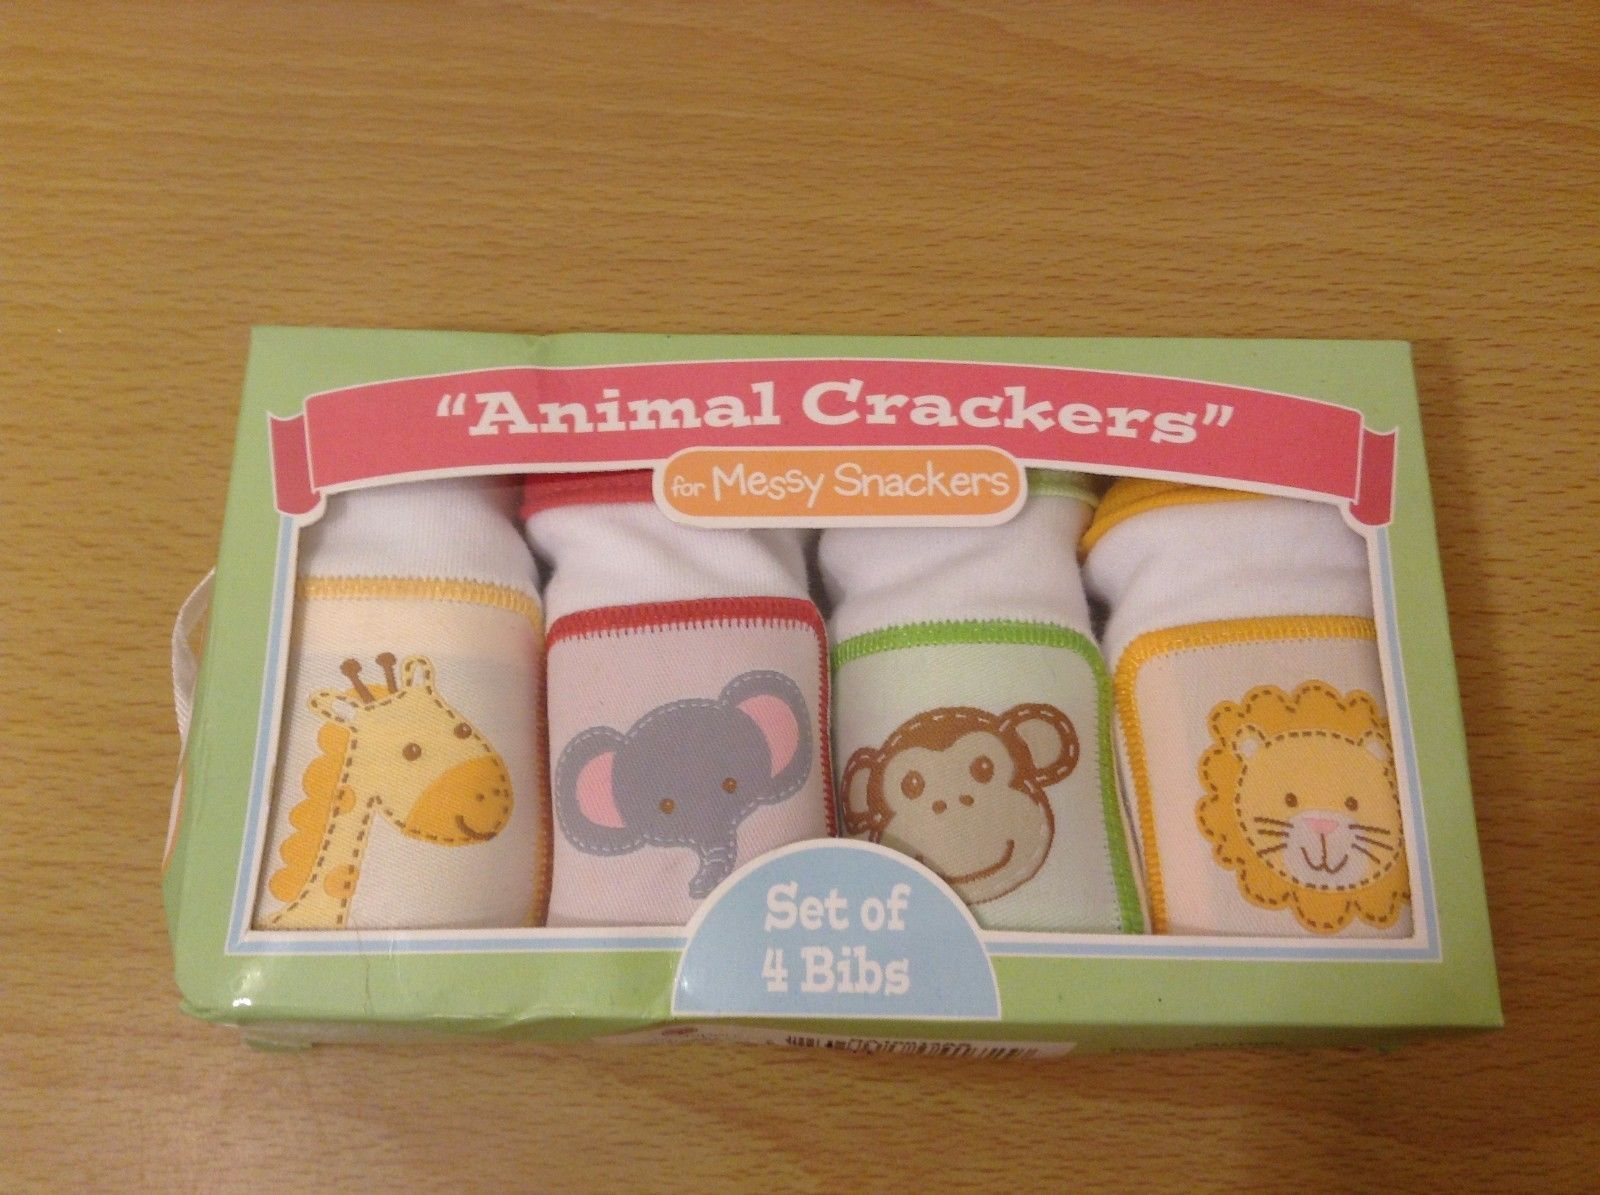 Baby Aspen Animal Crackers Set of 4 Bibs Giraffe Elephant Money Lion New